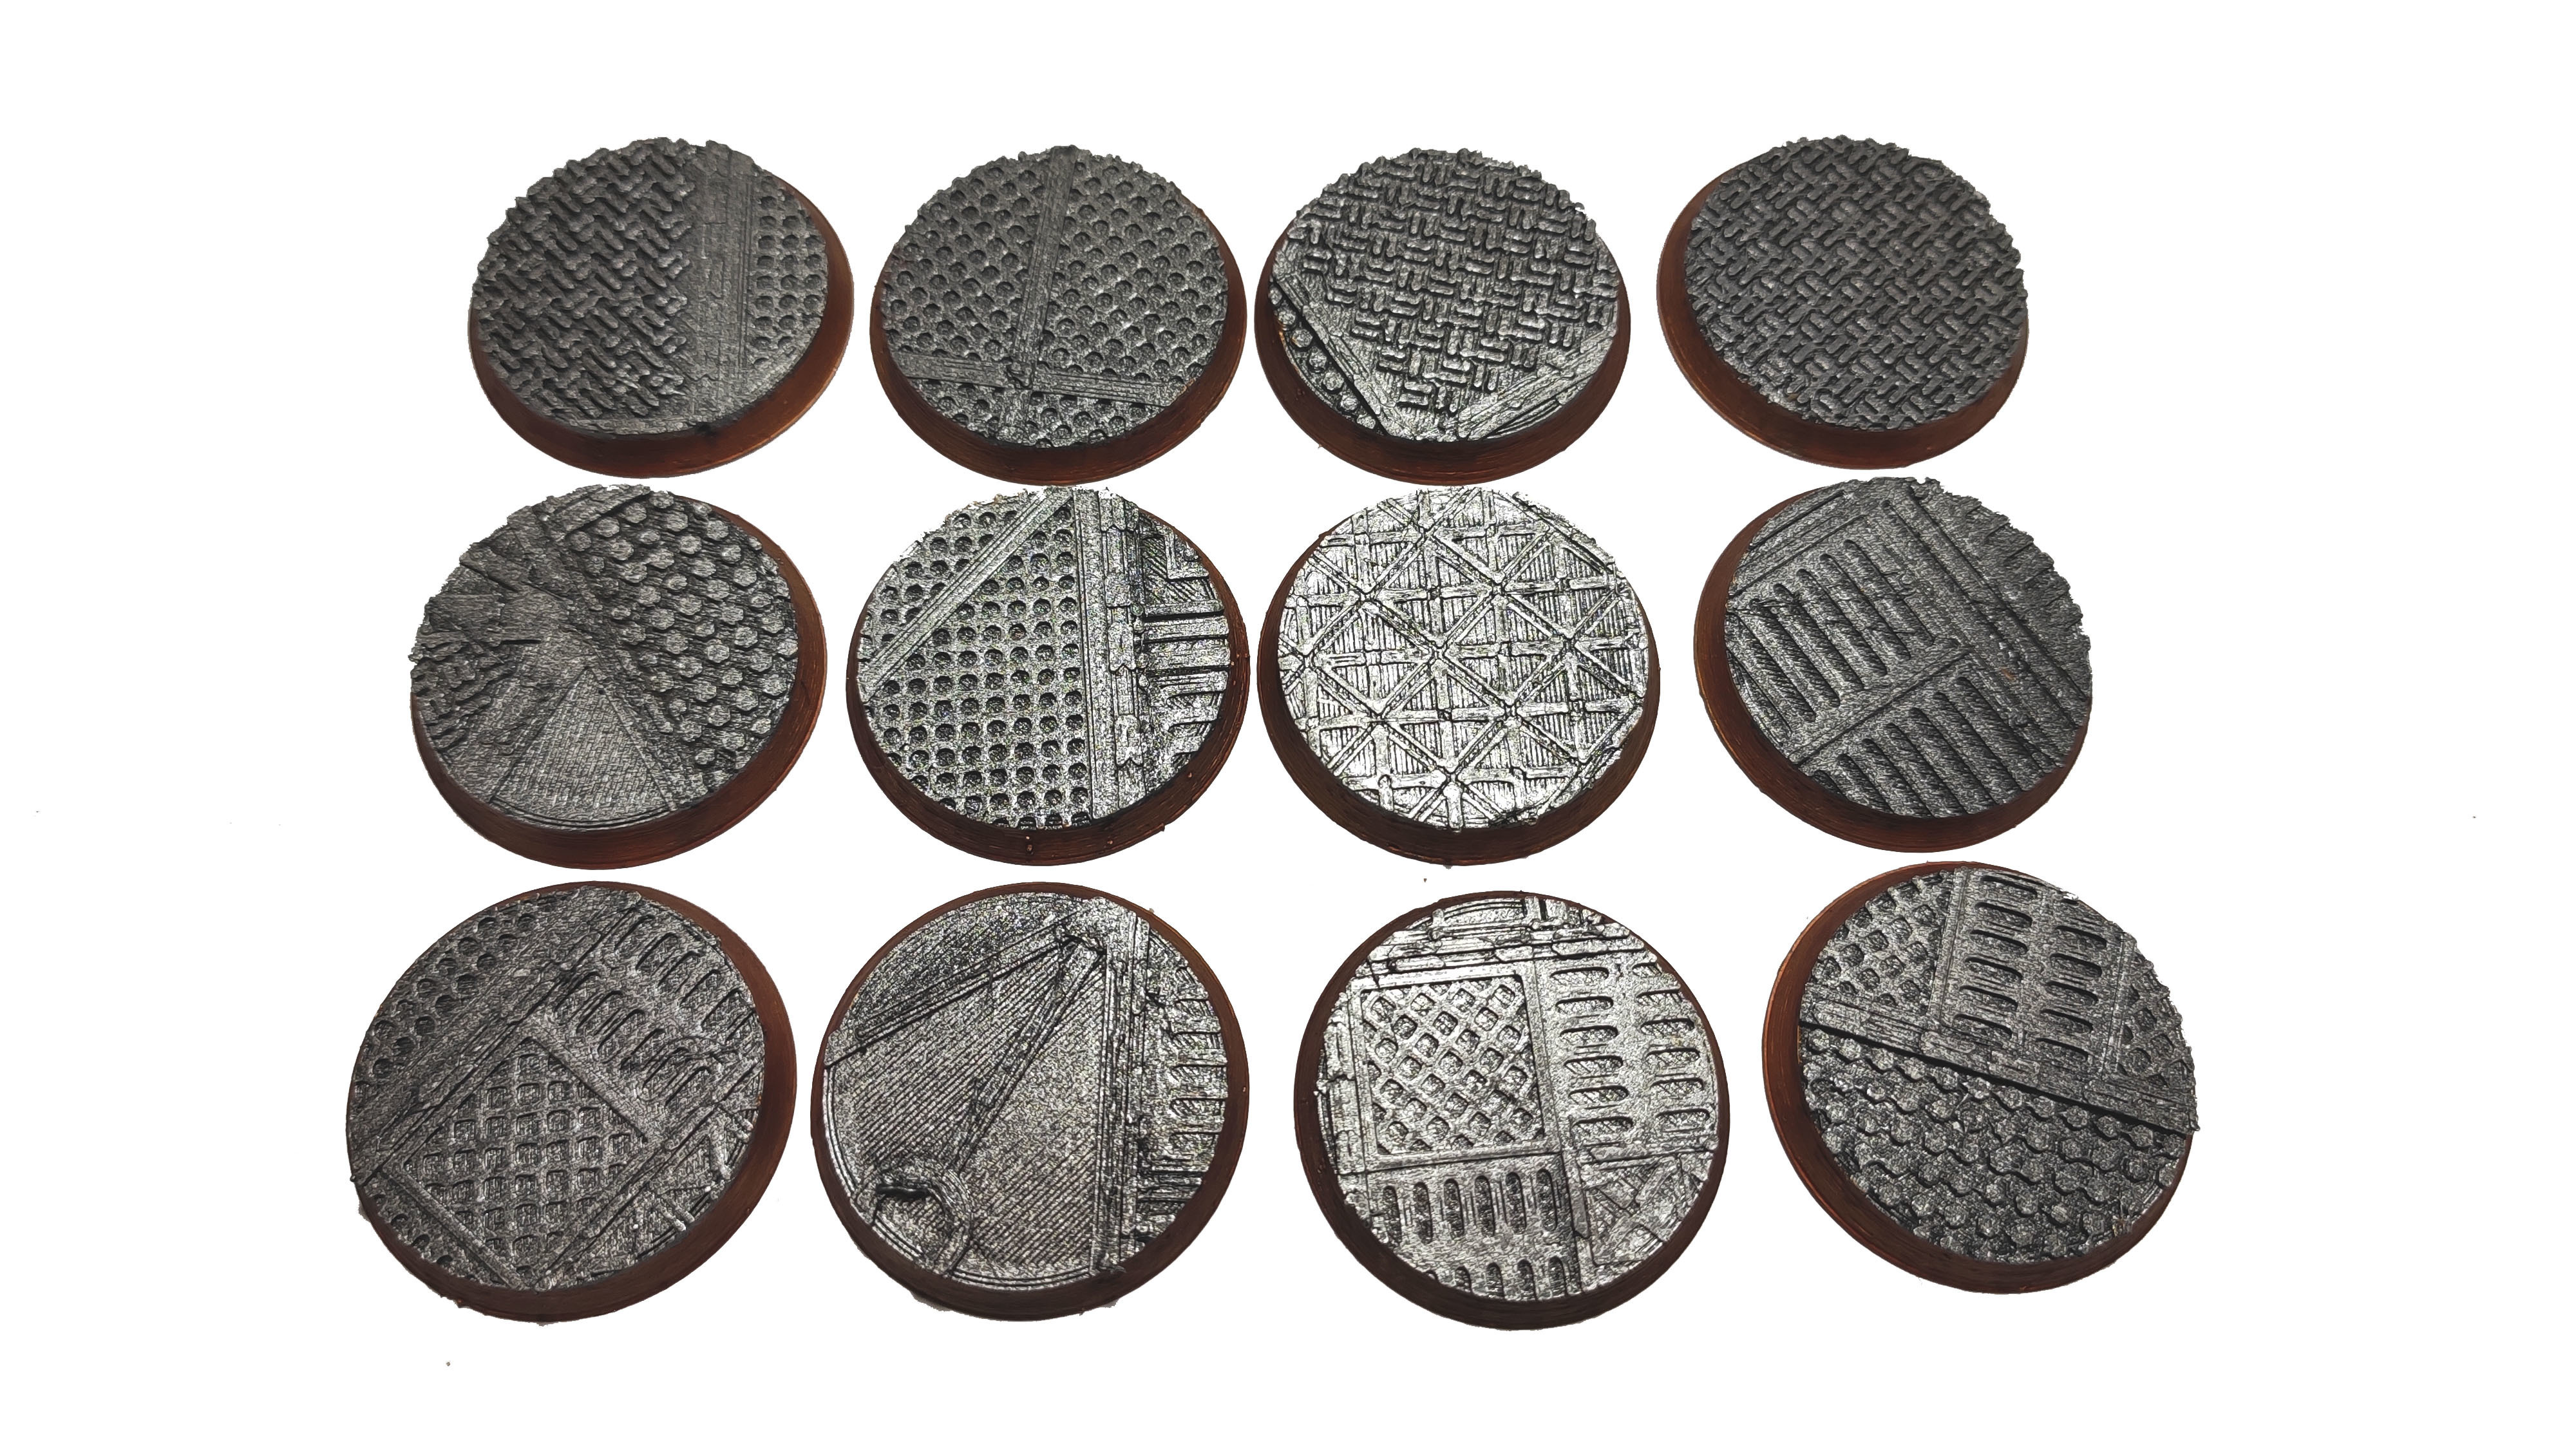 socles .jpg Download STL file x1000 Round, oval, square, rectangular, hexagonal, industrial textured bases • 3D print design, Alario